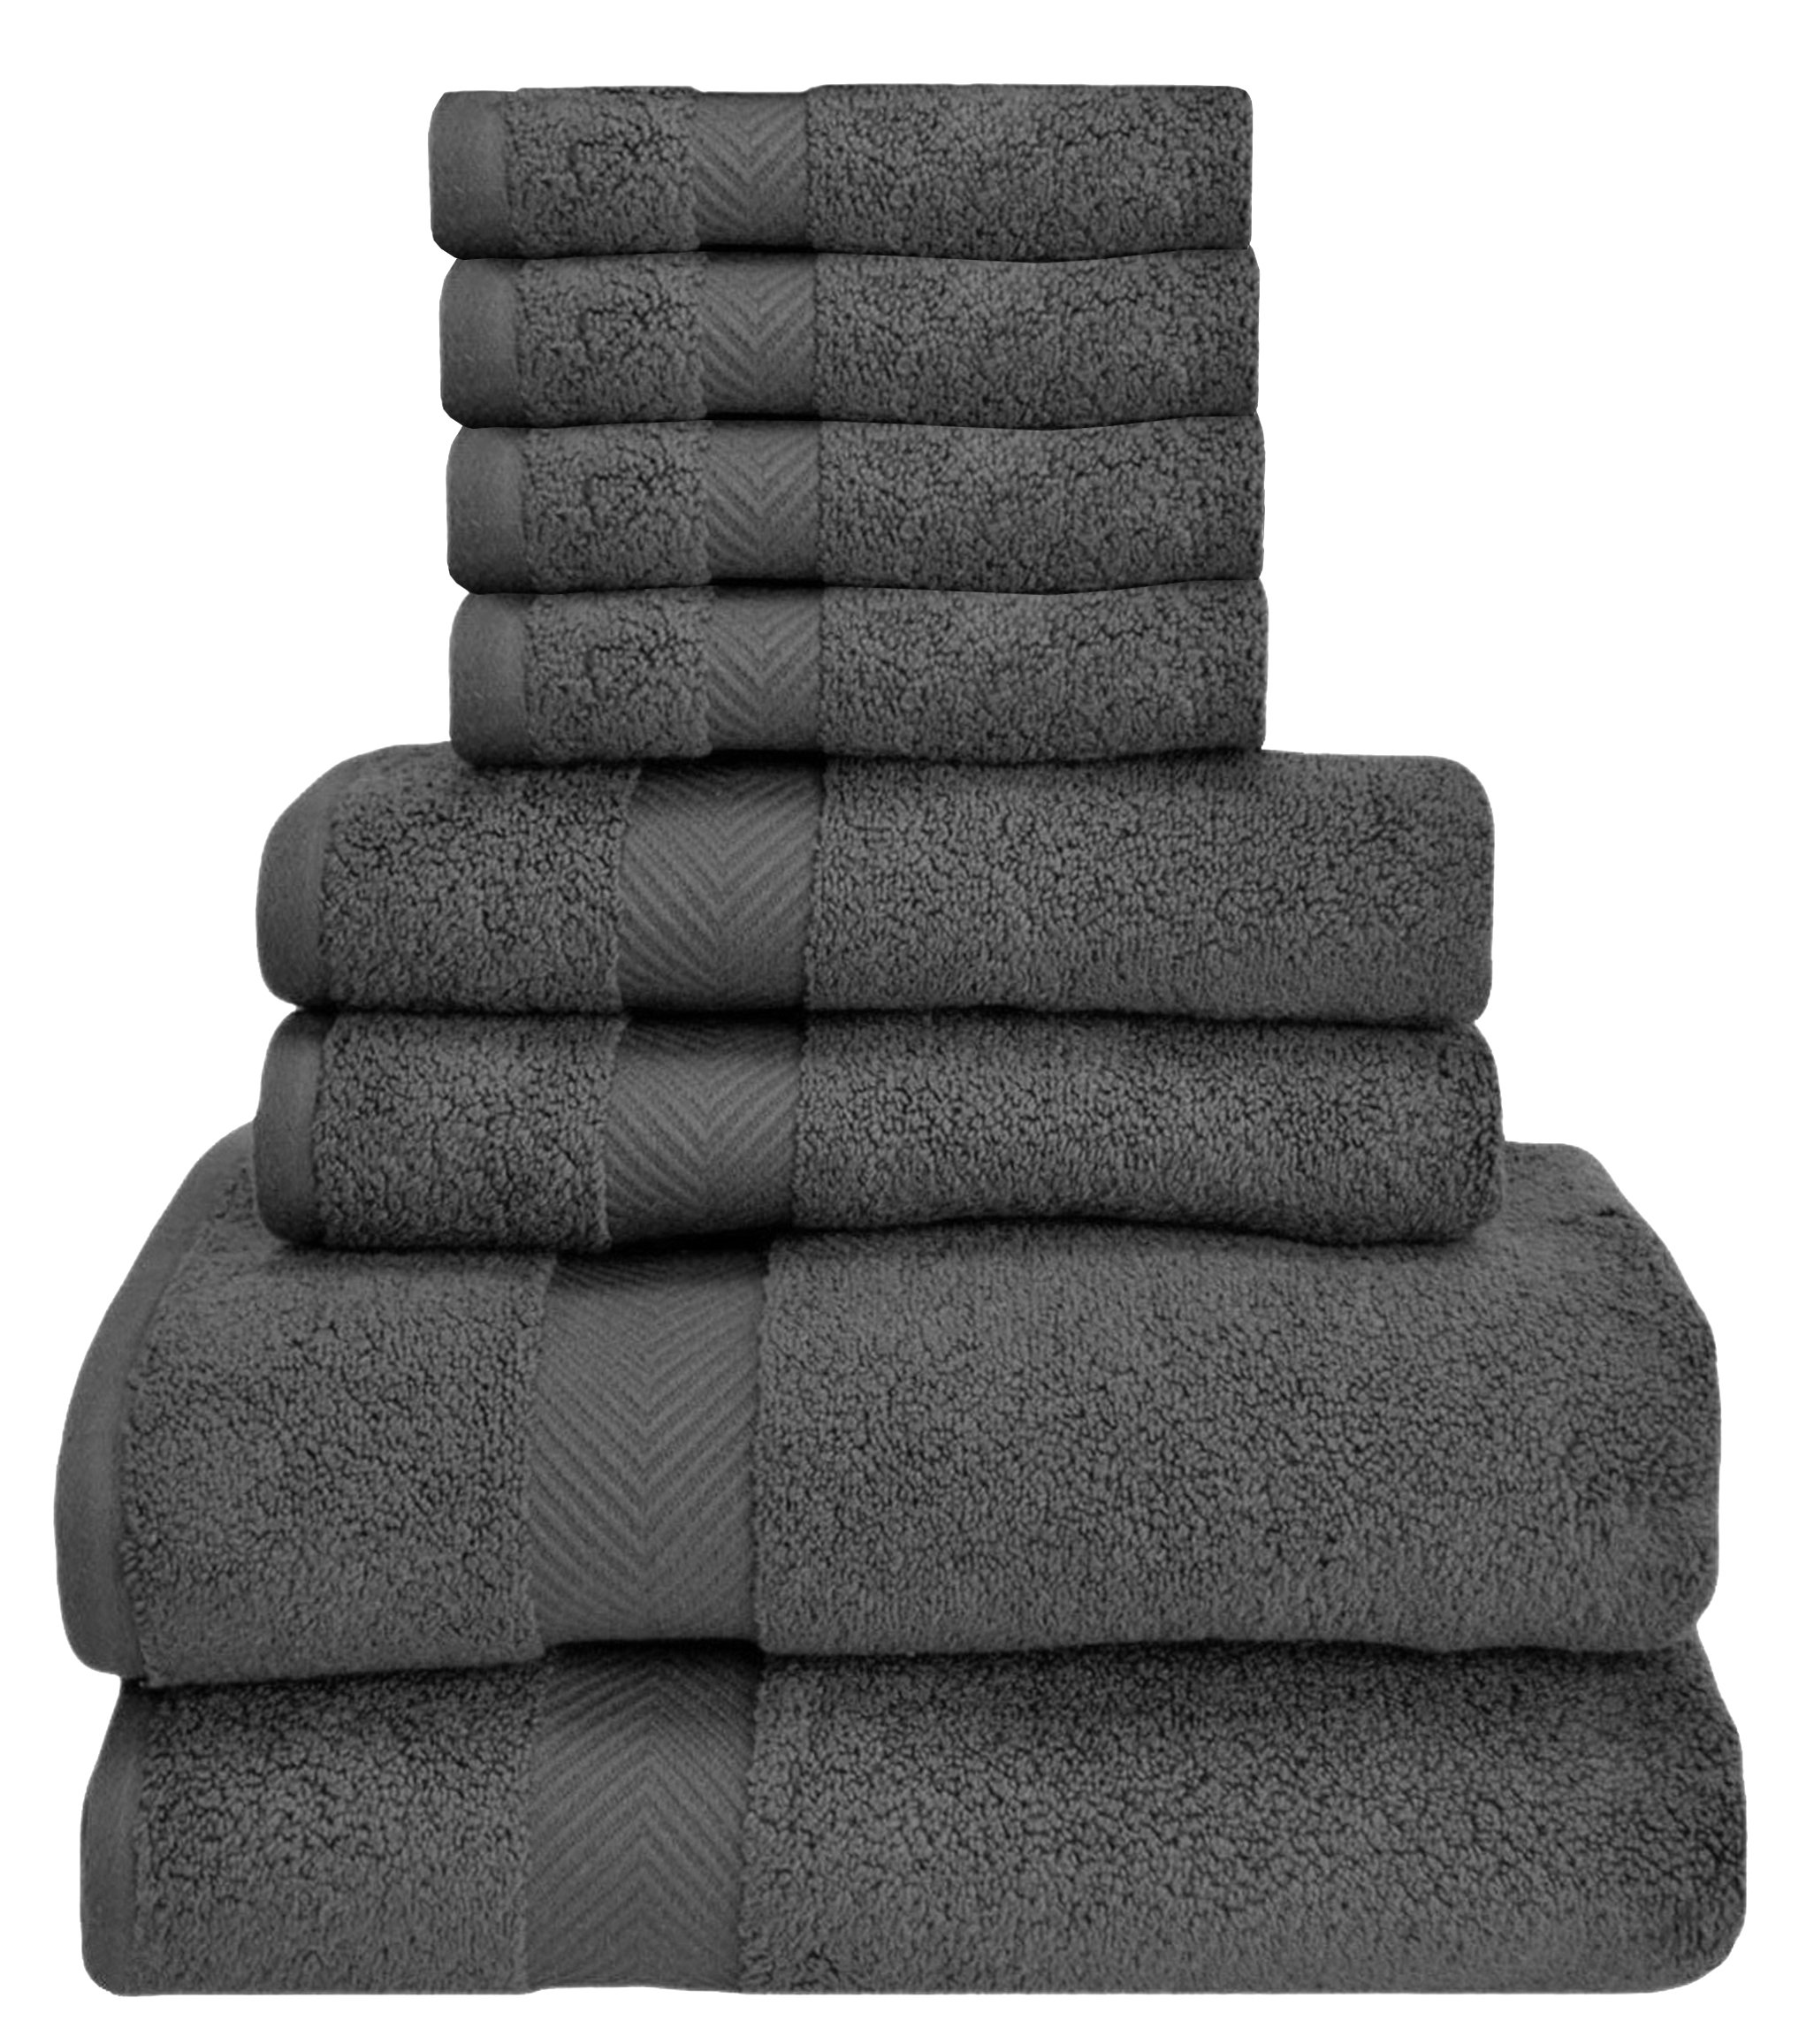 HomeLabels Premium 8 Piece Towel Set (Grey); 2 Bath Towels, 2 Hand Towels and 4 Washcloths - Cotton - Hotel Quality, Super Soft and Highly Absorbent